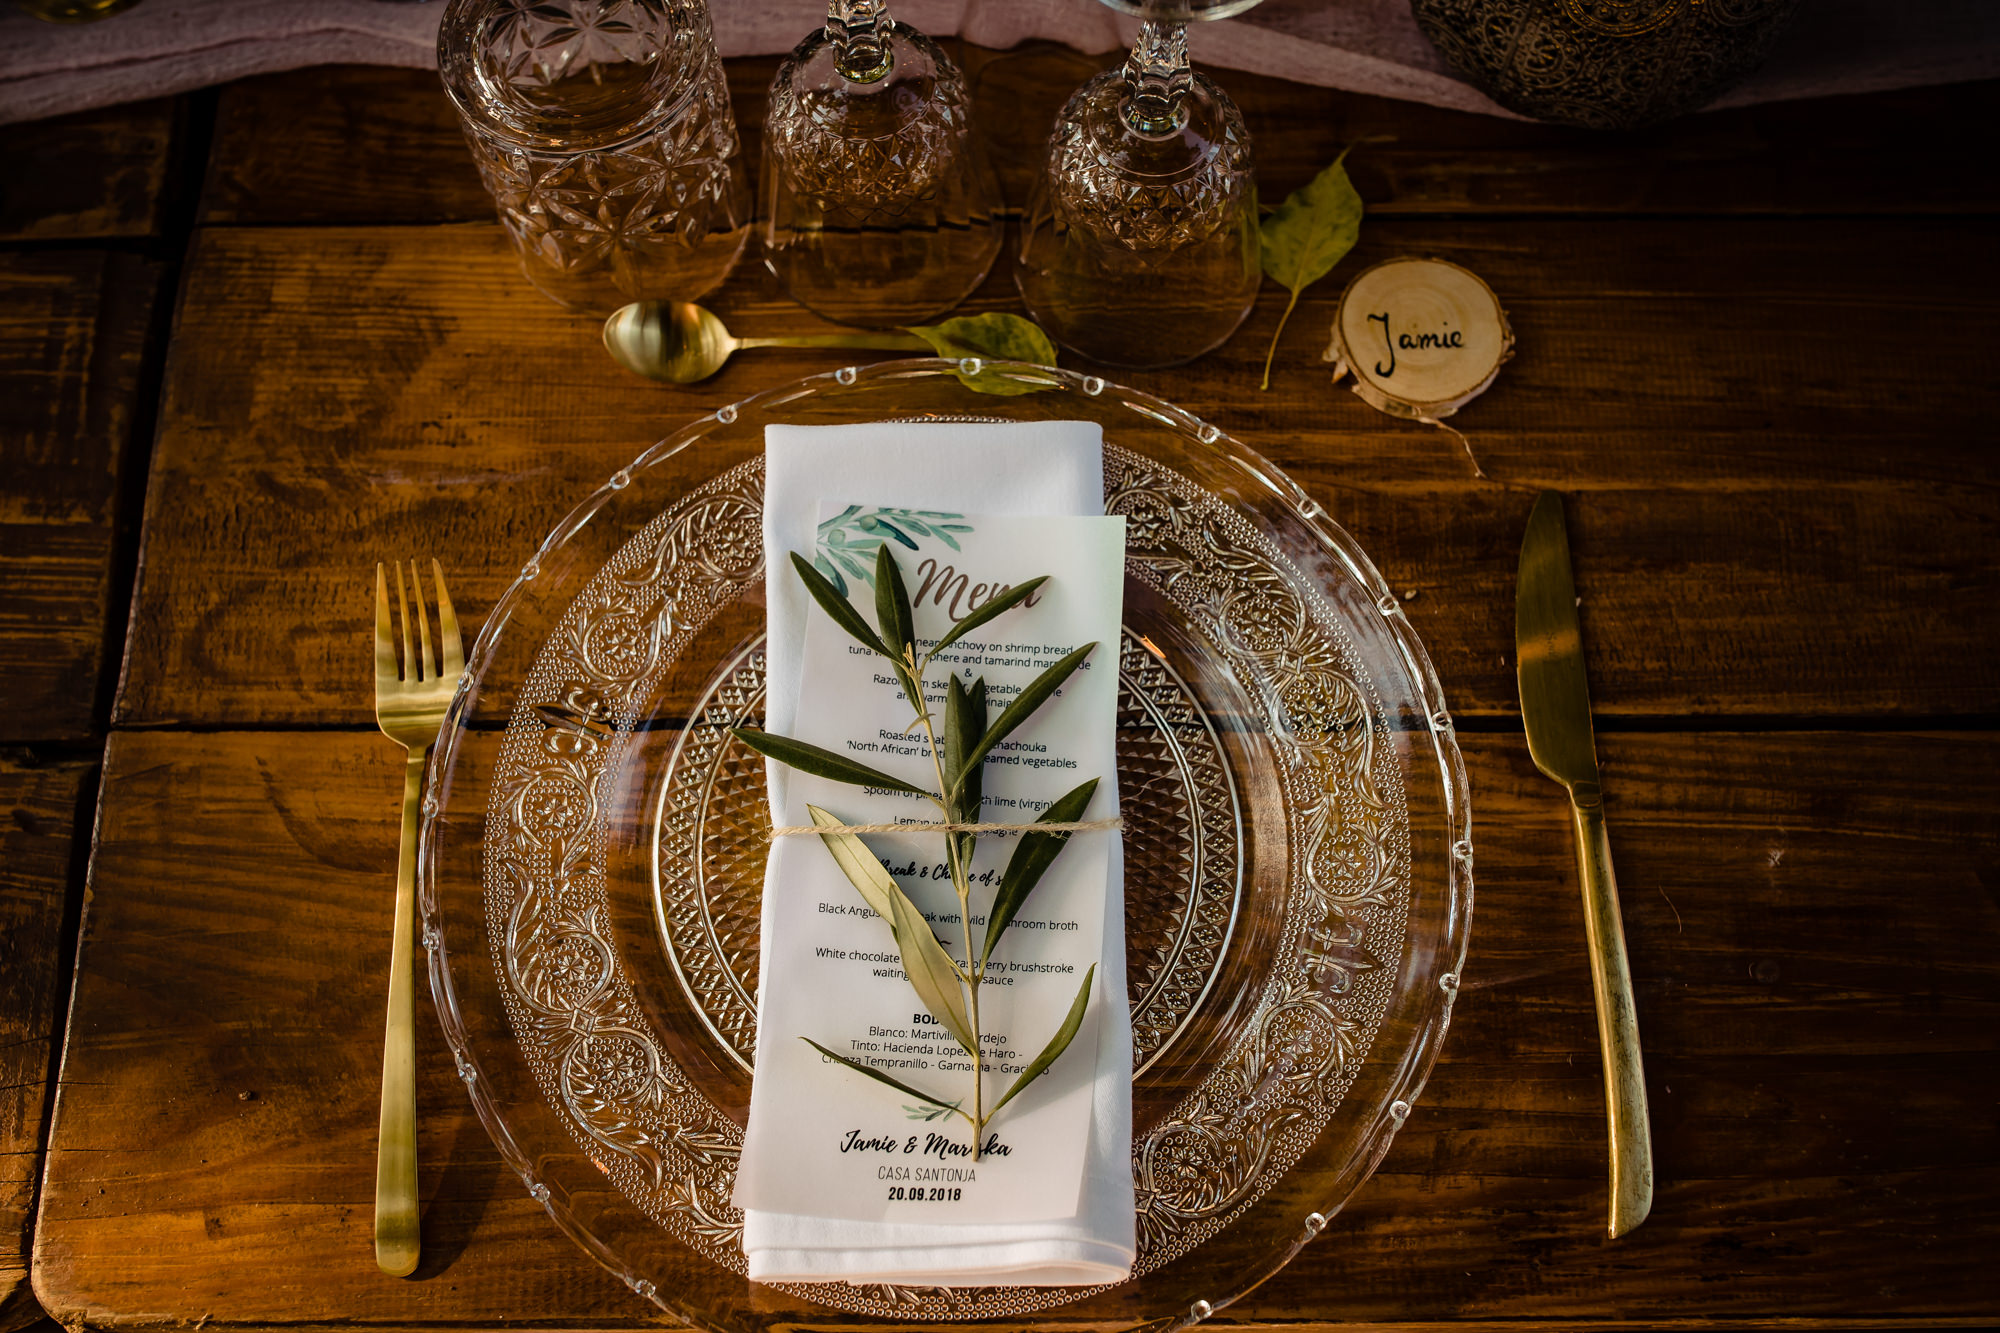 glass-charger-with-menu-and-bay-leaves-worlds-best-wedding-photos-eppel-photography-weert-netherlands-wedding-photographers